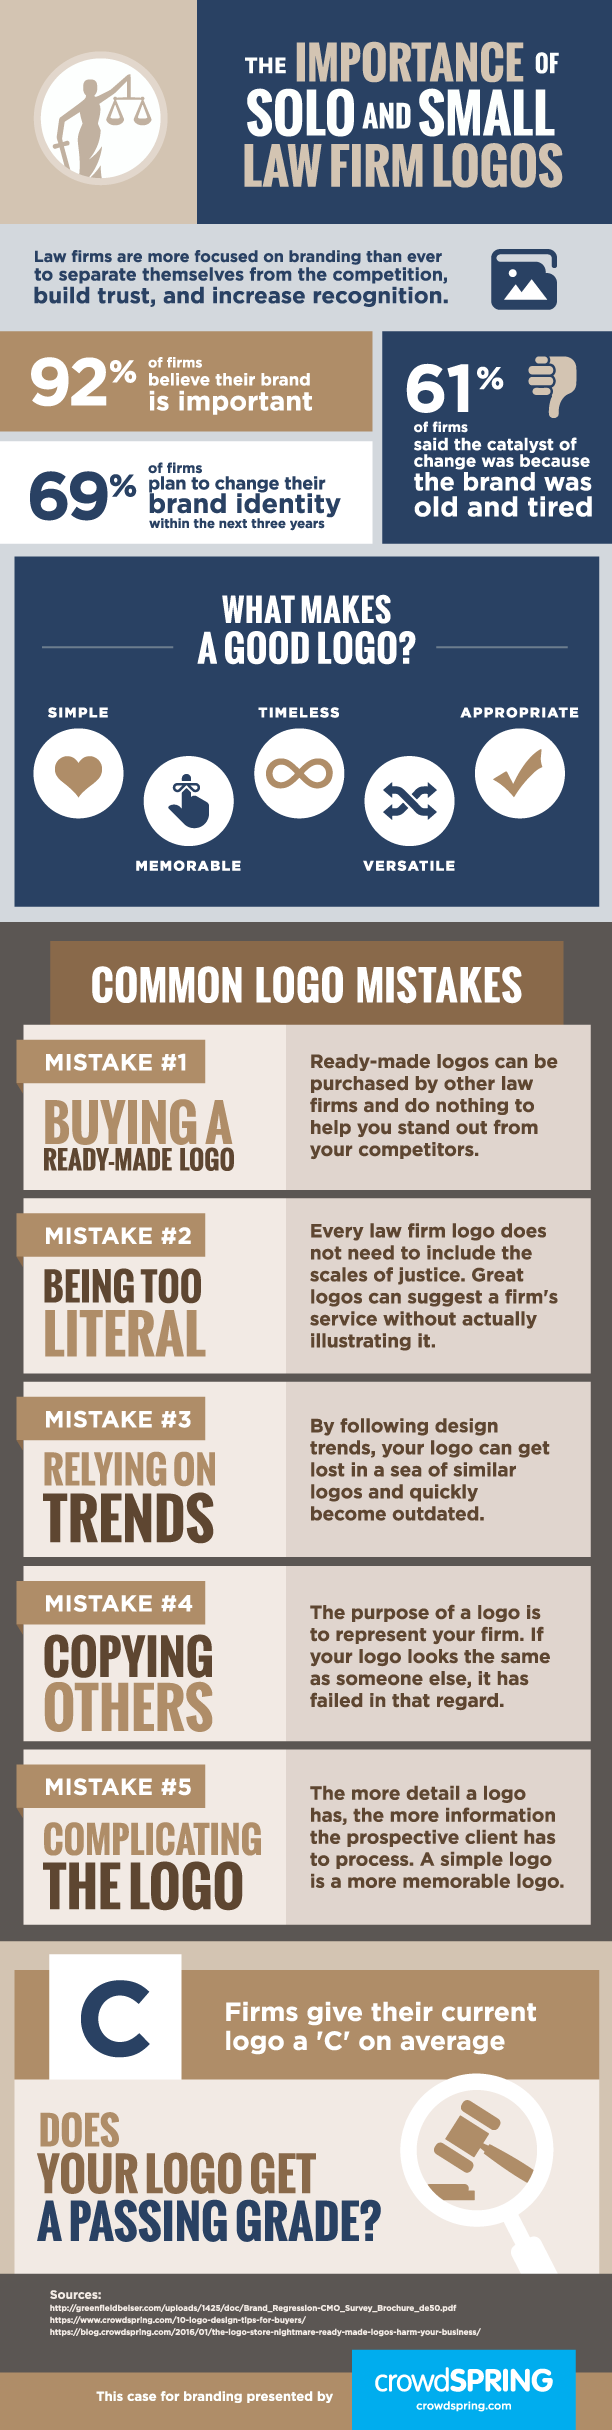 The Importance of Small Law Firm Logos by crowdSPRING